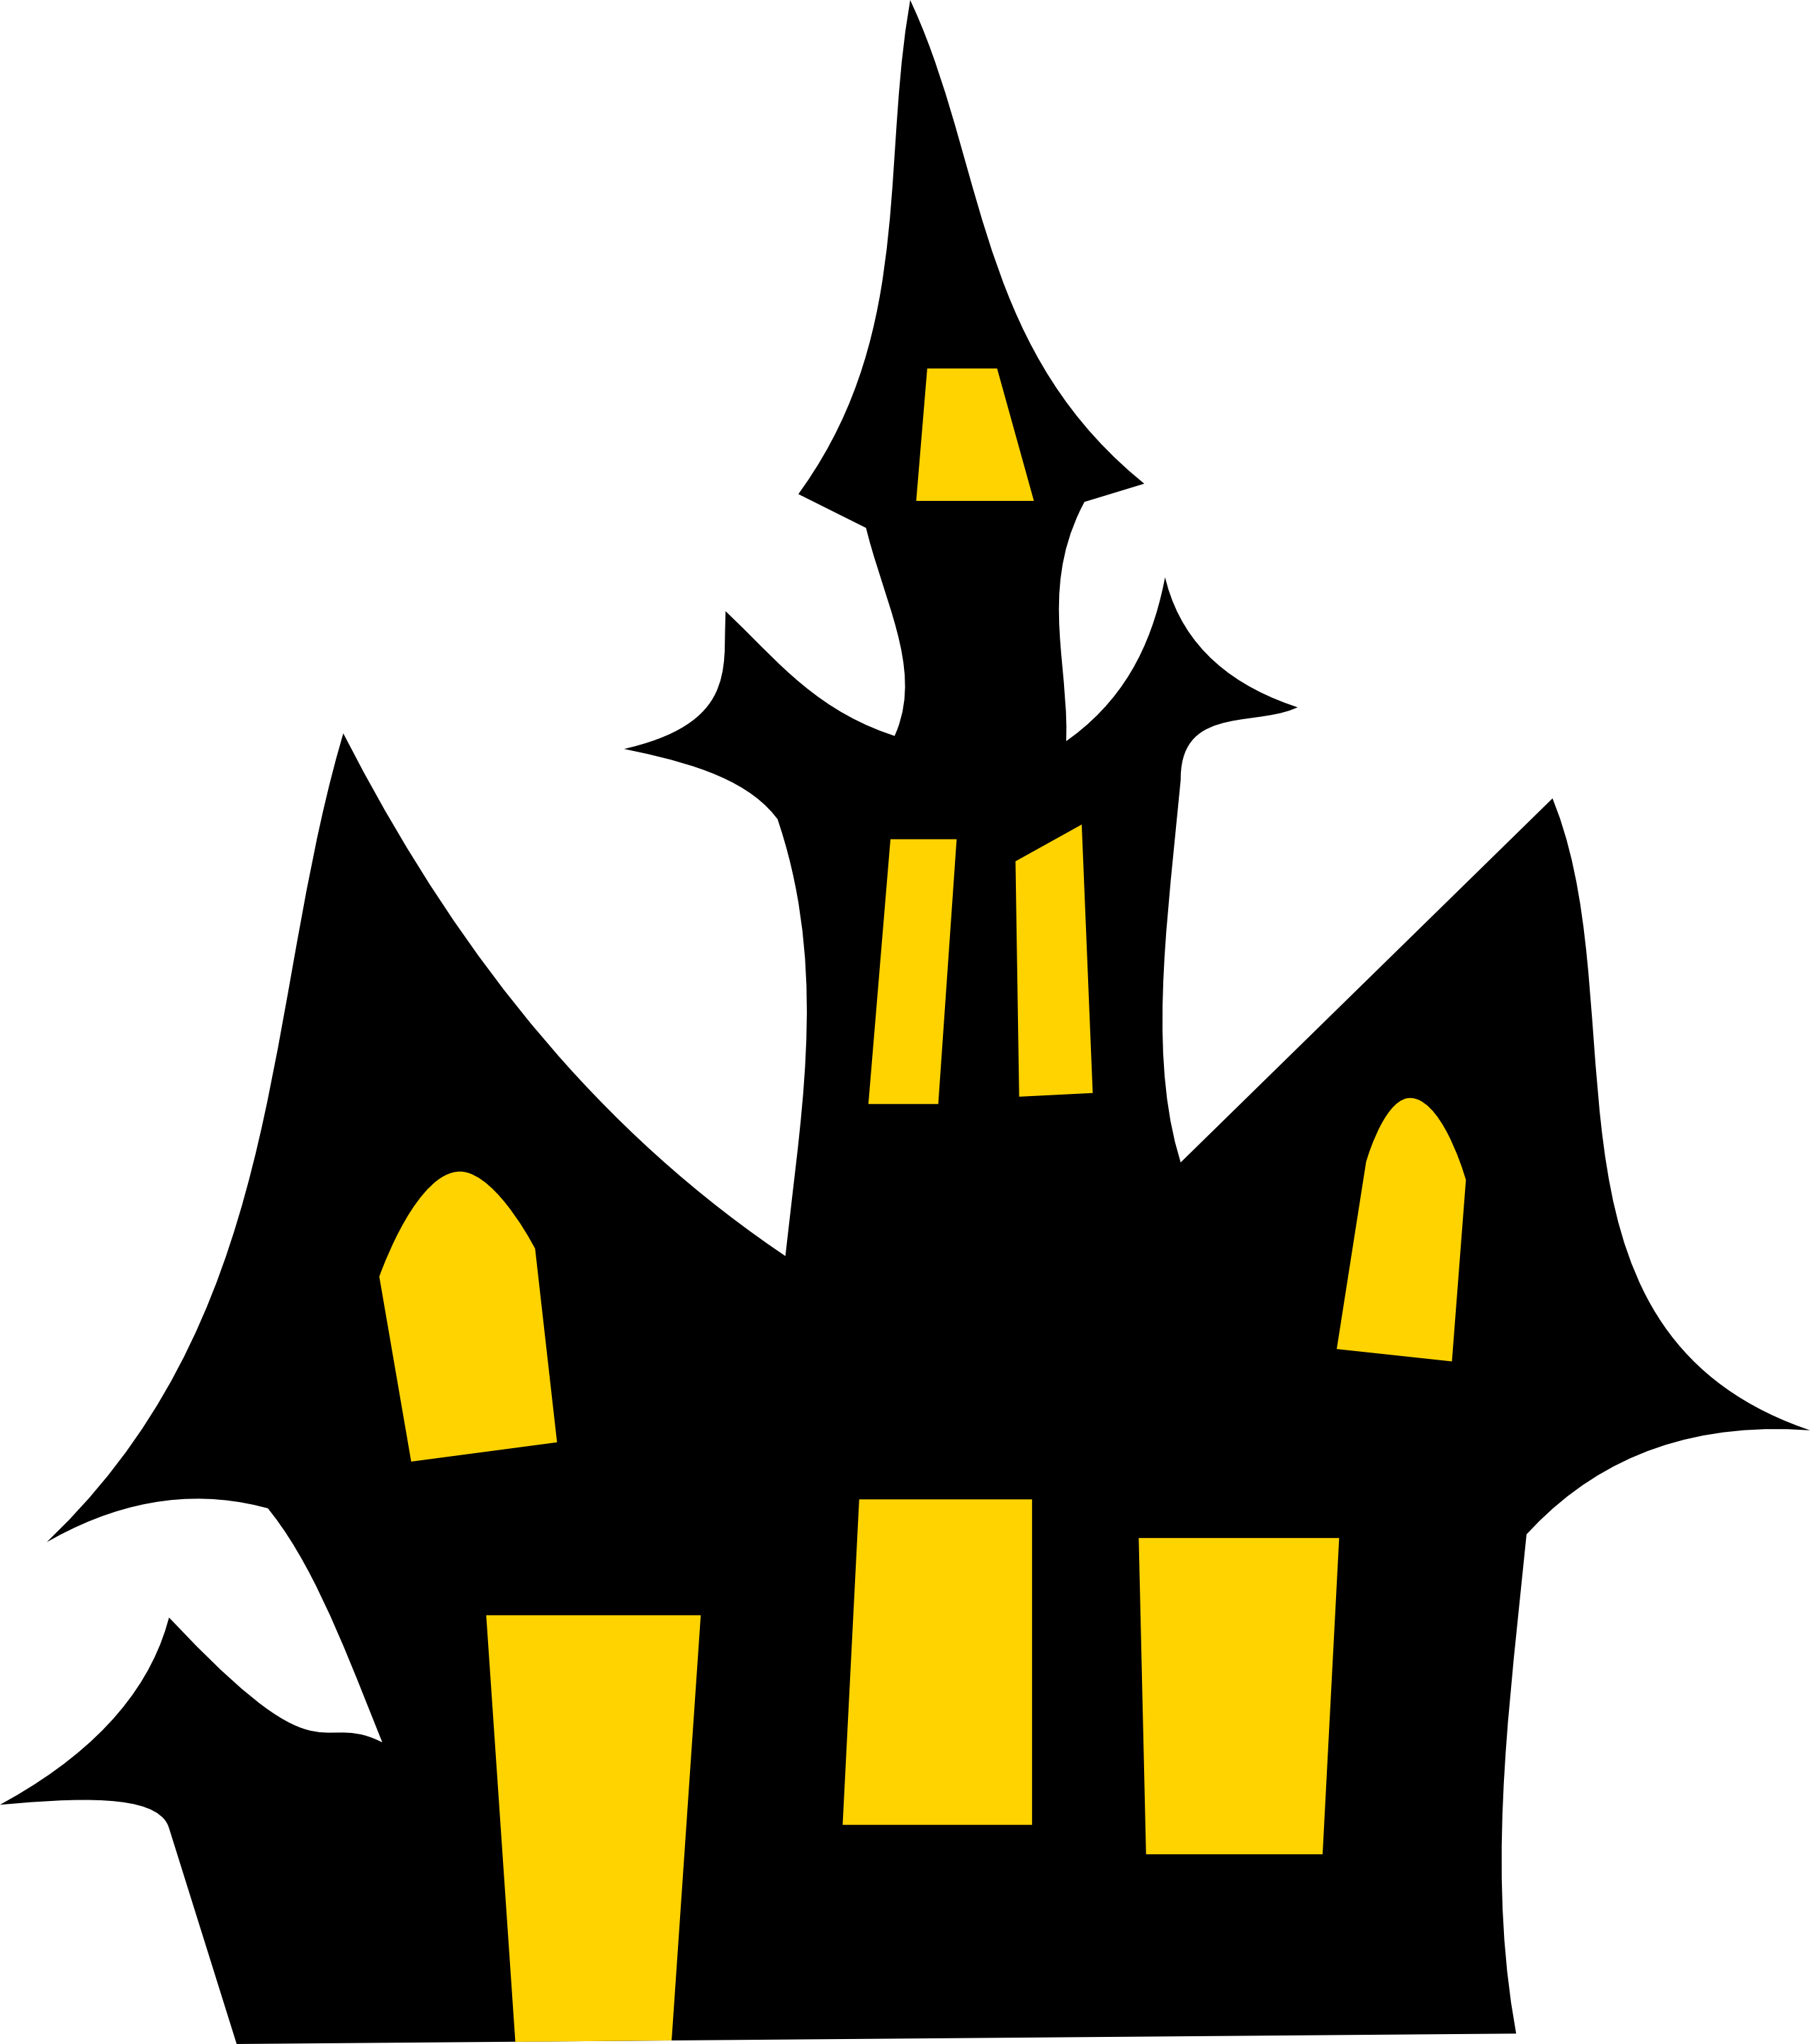 House fire clipart free Haunted House Clipart | Clipart Panda - Free Clipart Images free